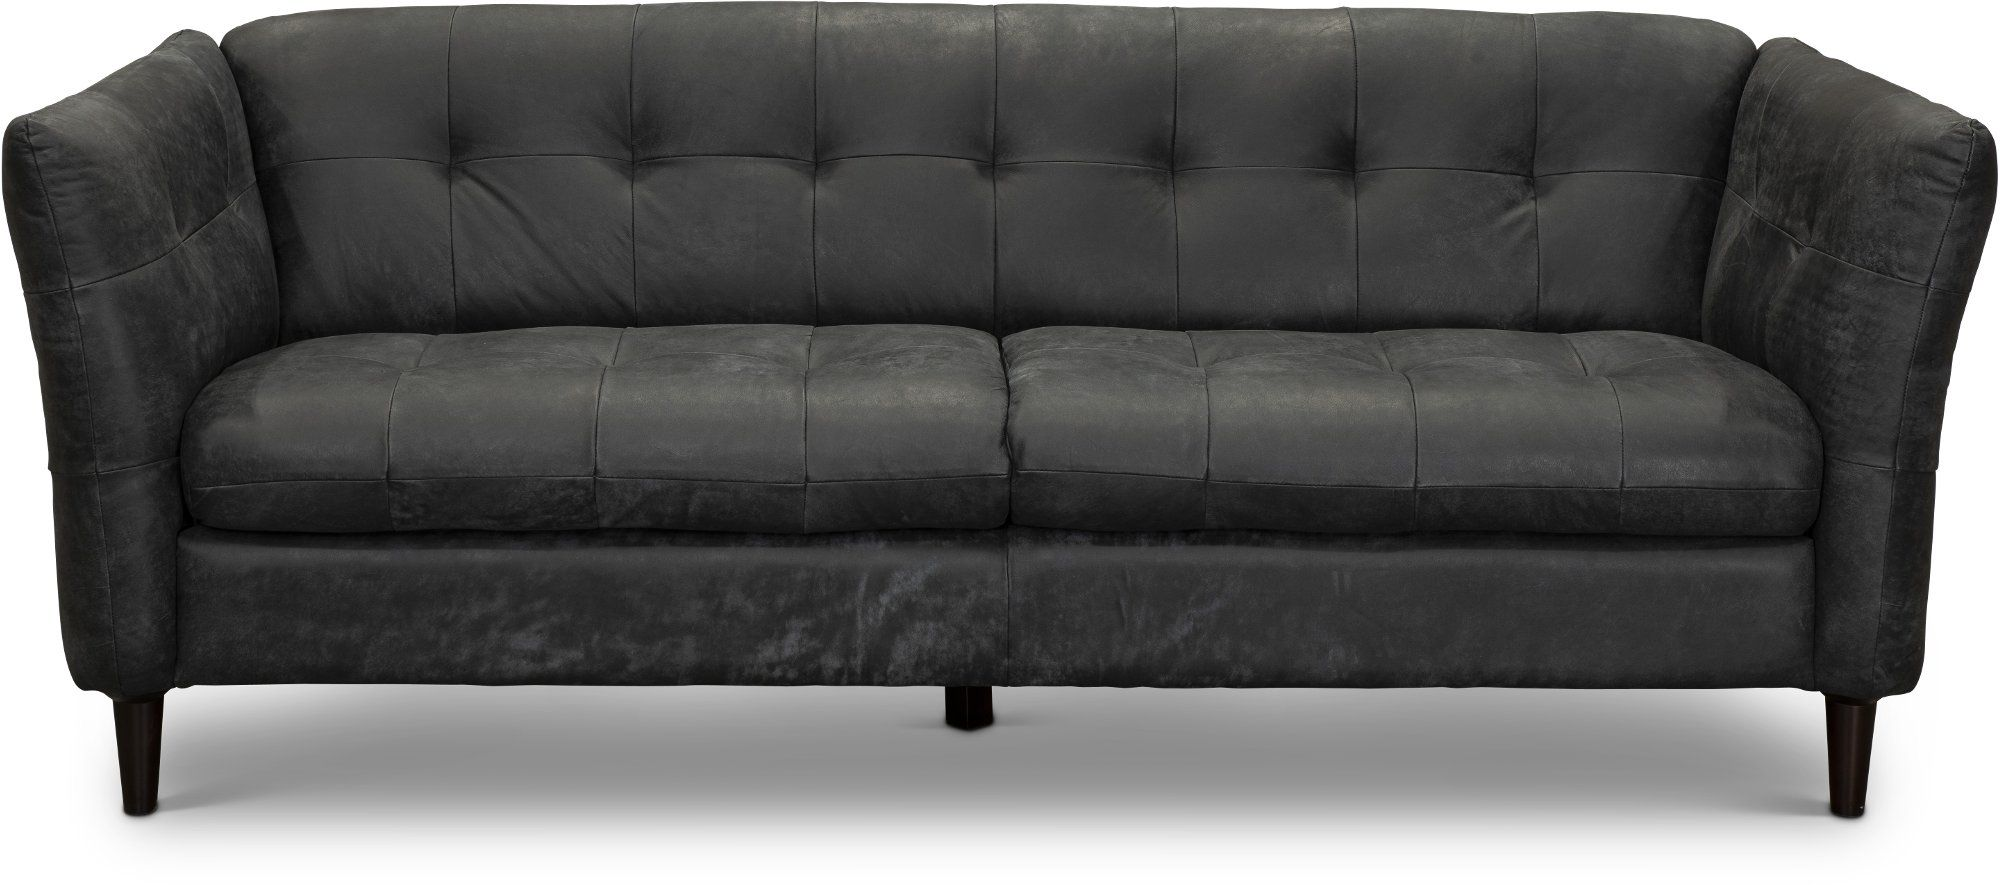 Contemporary Black Leather Sofa Ivan Black Leather Sofas